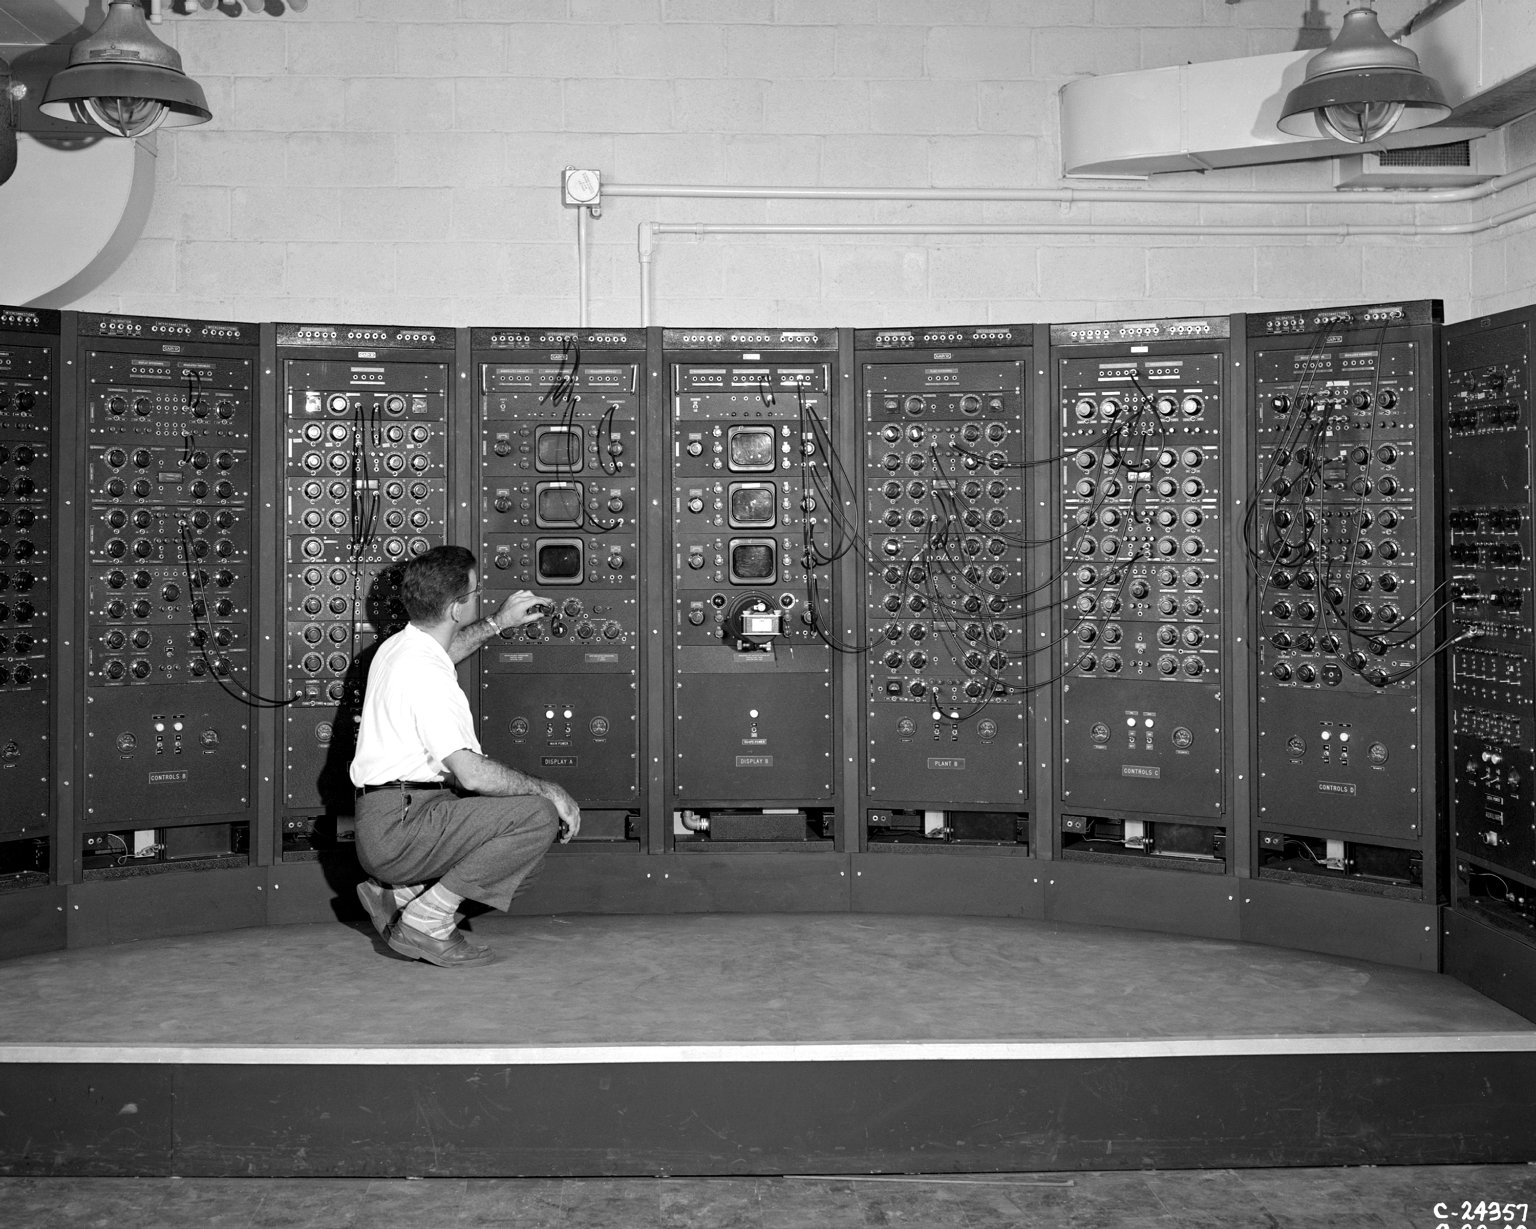 Analog Computing Machine in Fuel Systems Building